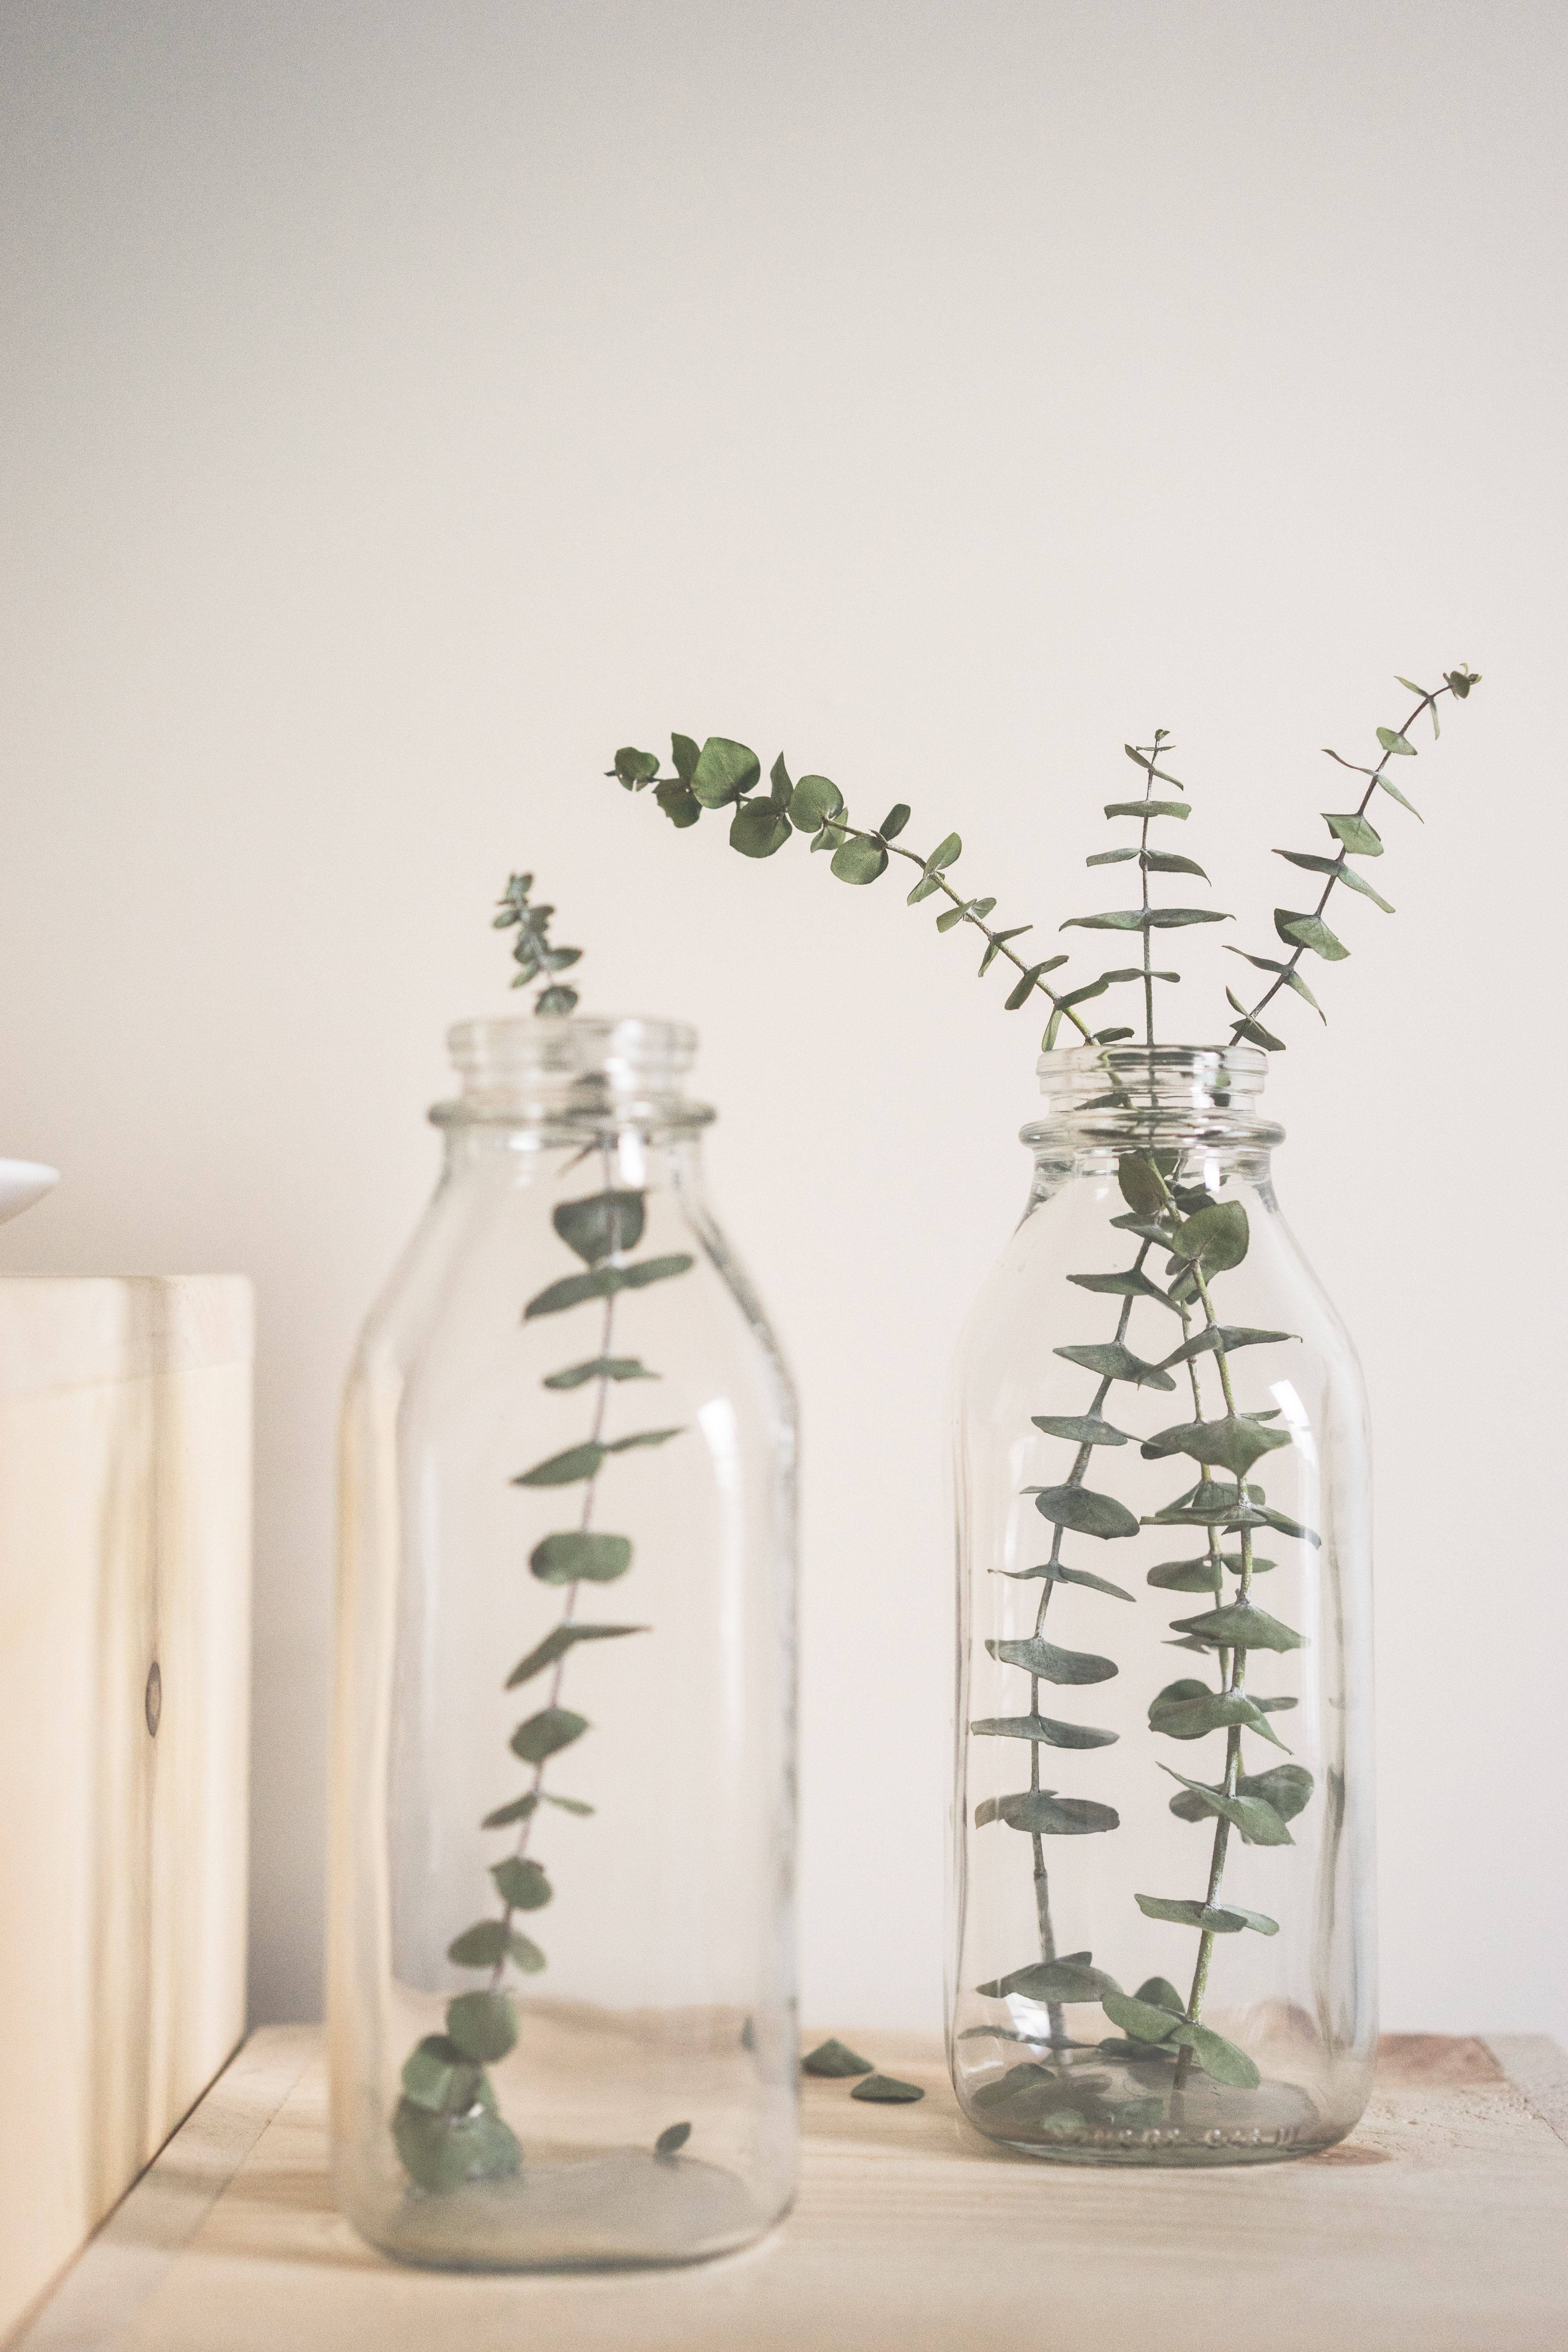 green leafed plant on clear glass vase